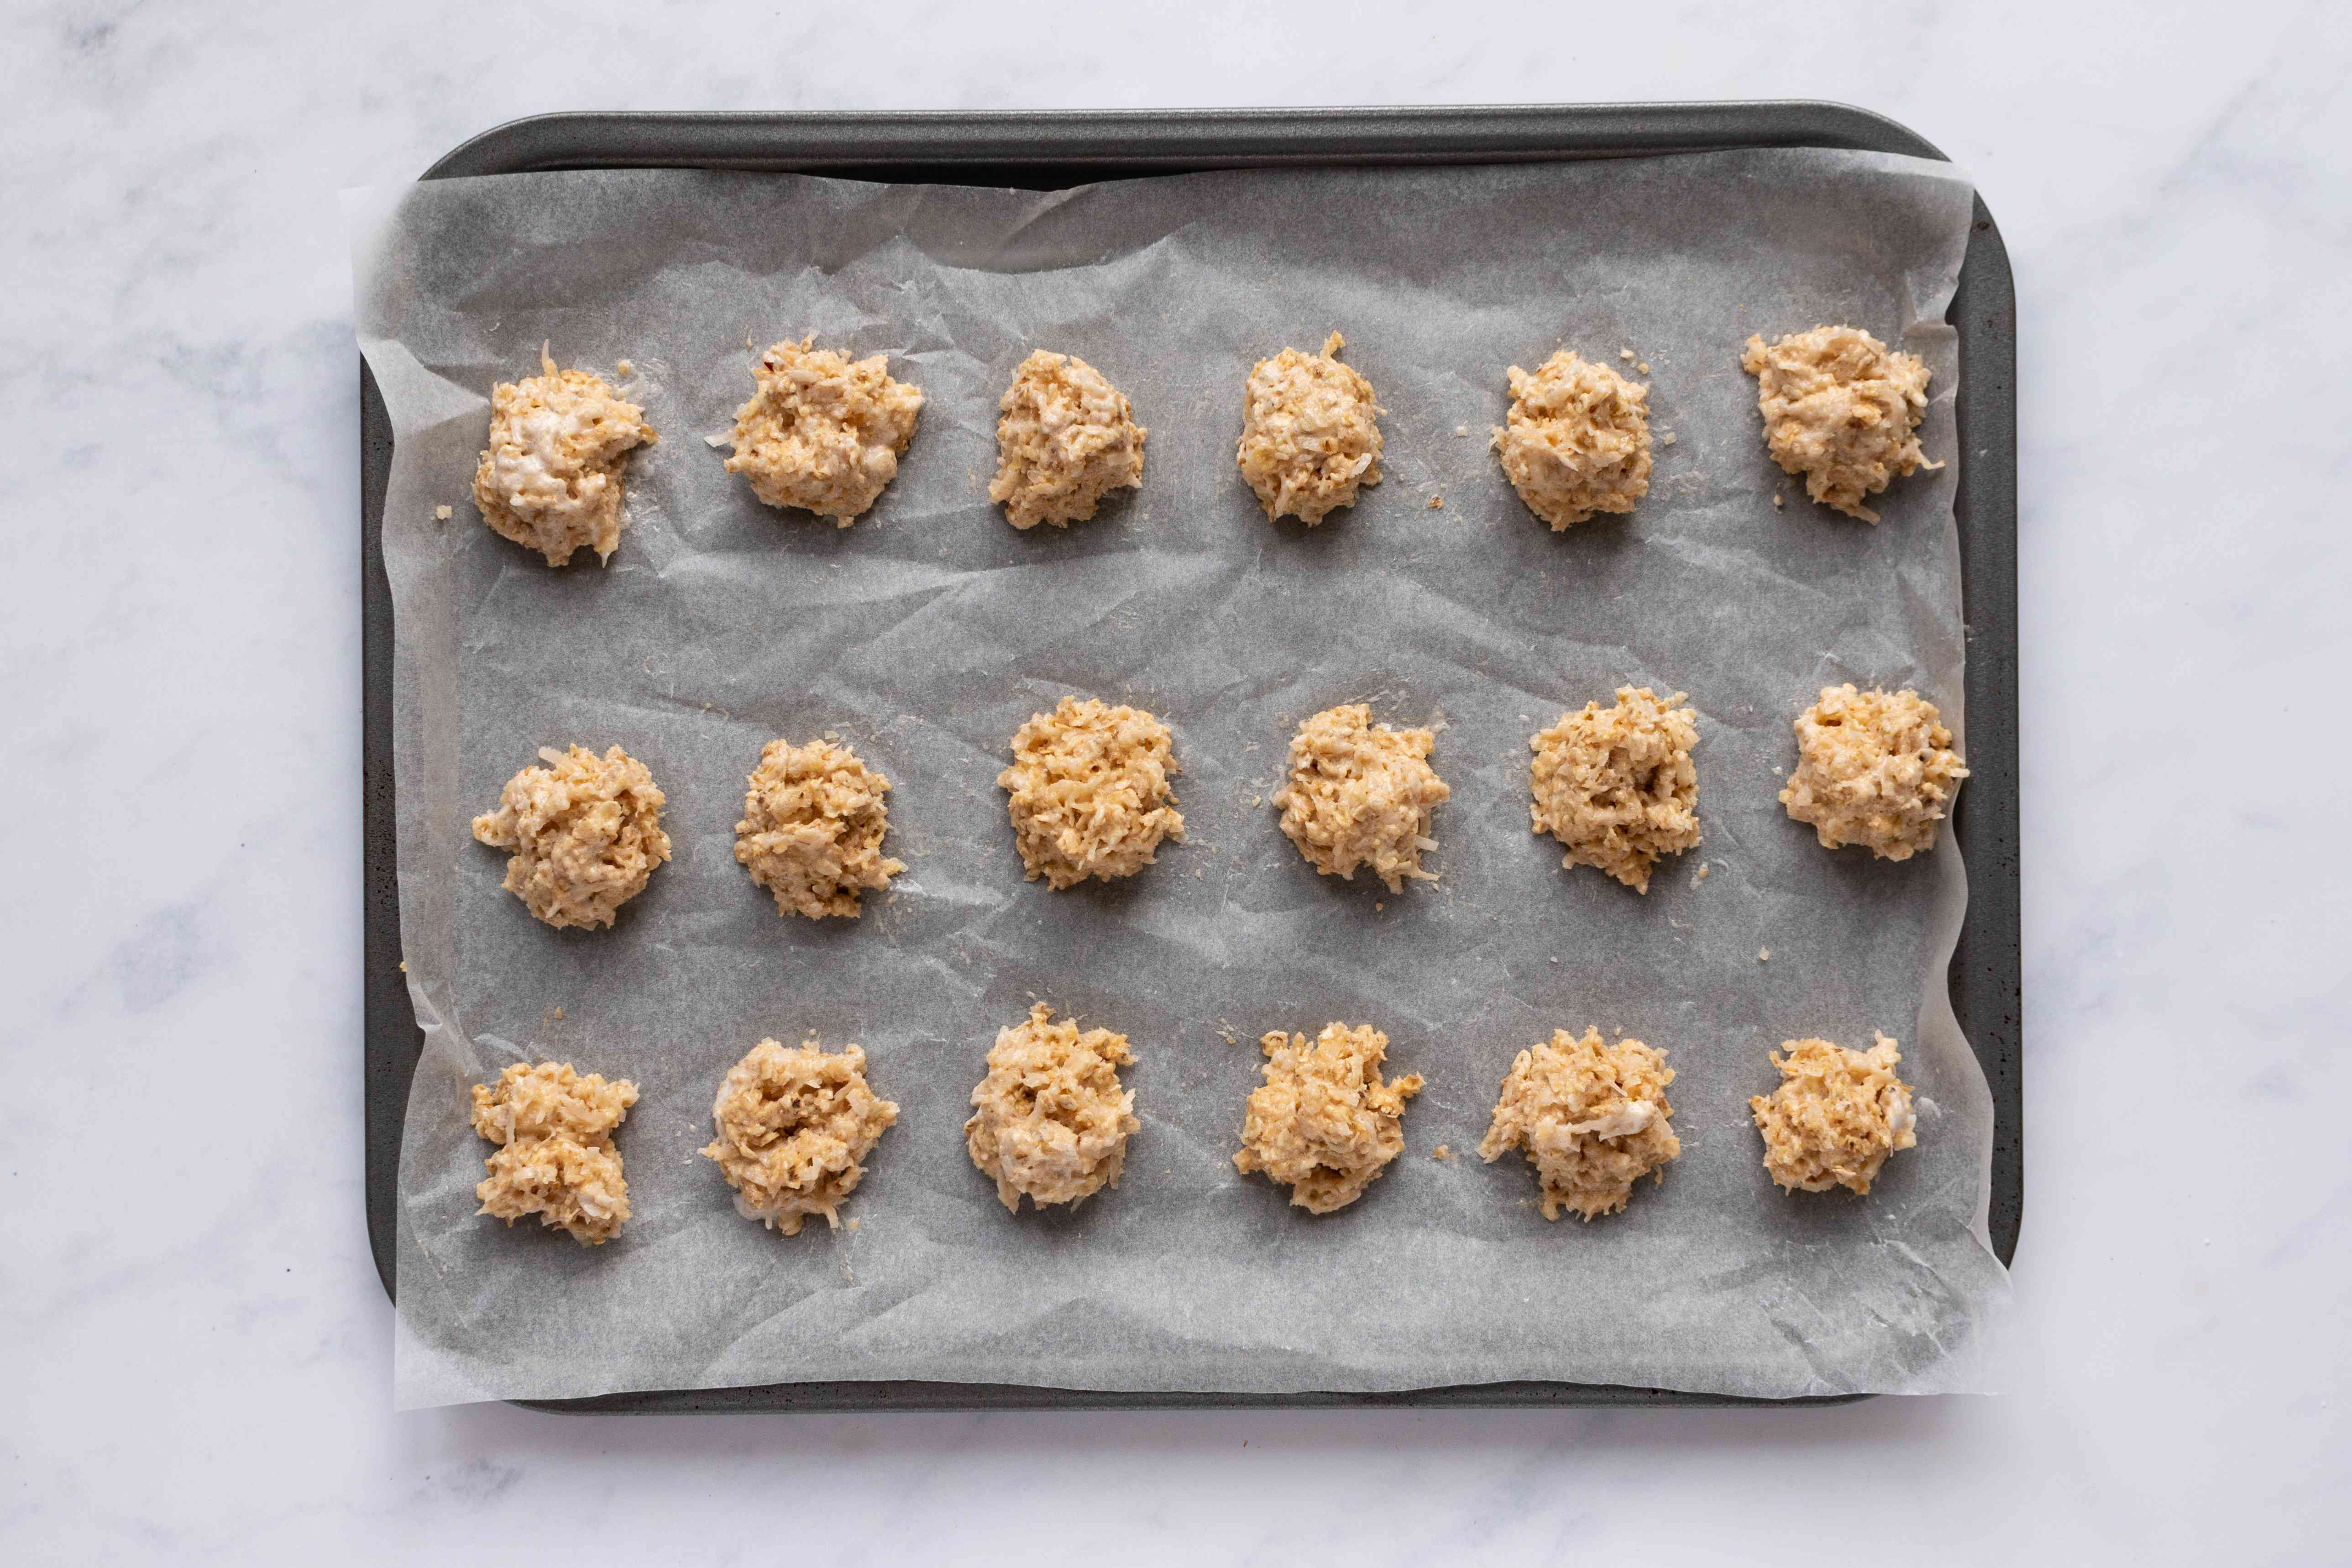 coconut cookies on a baking sheet